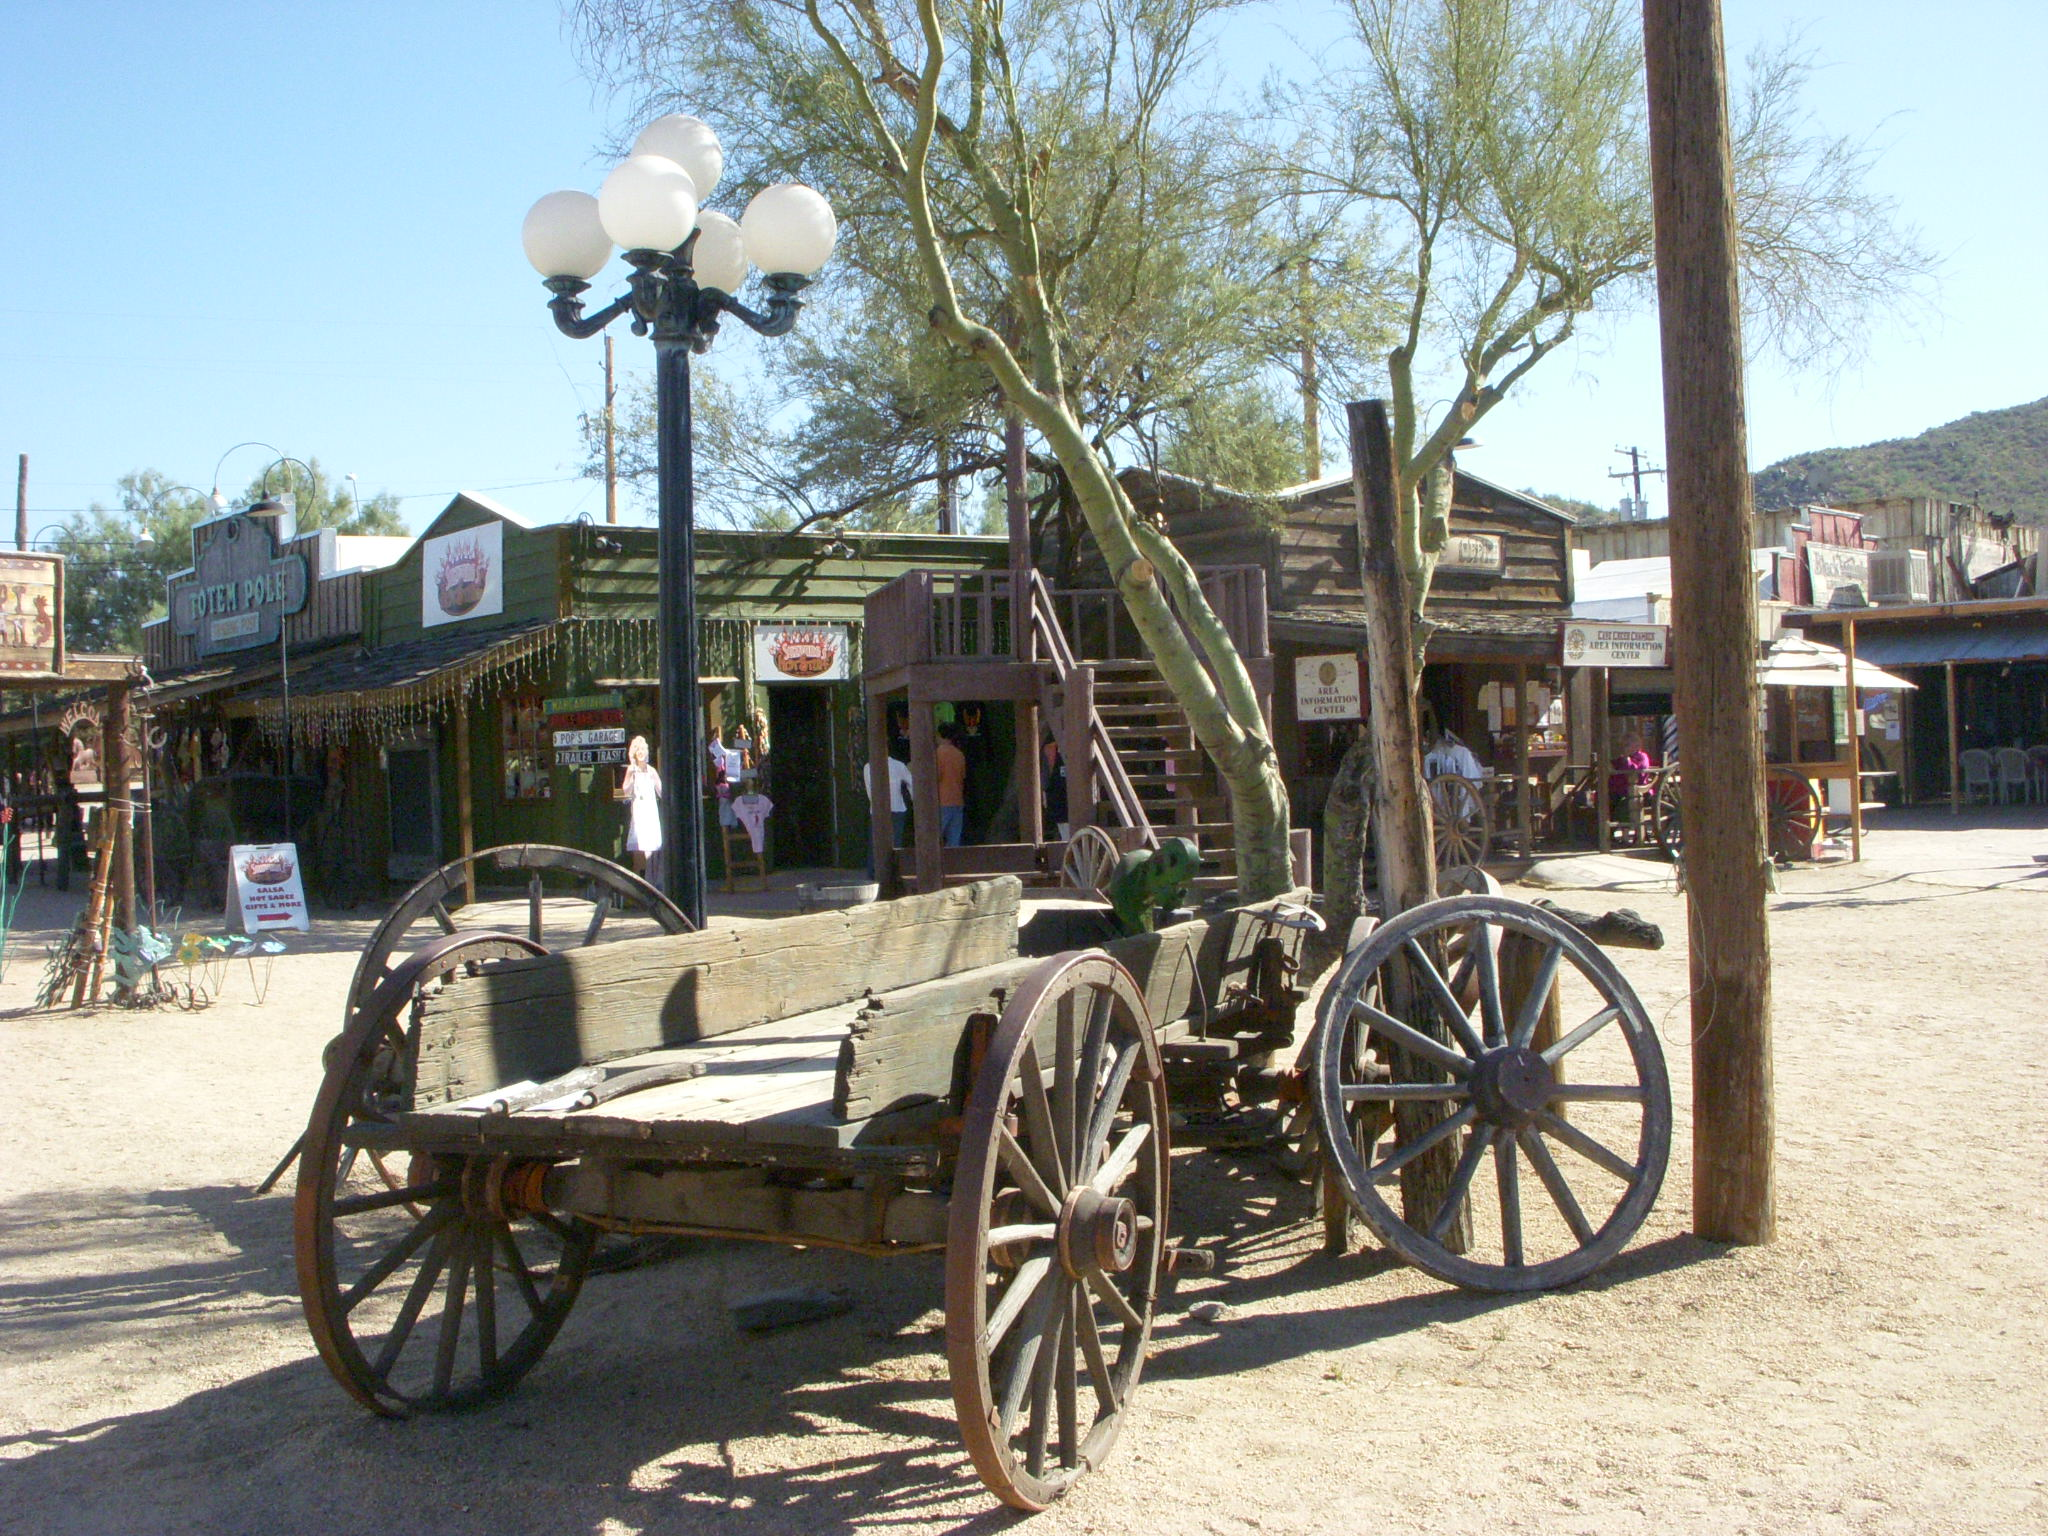 An old Western wooden wagon displayed outside the shops at Frontier Town.